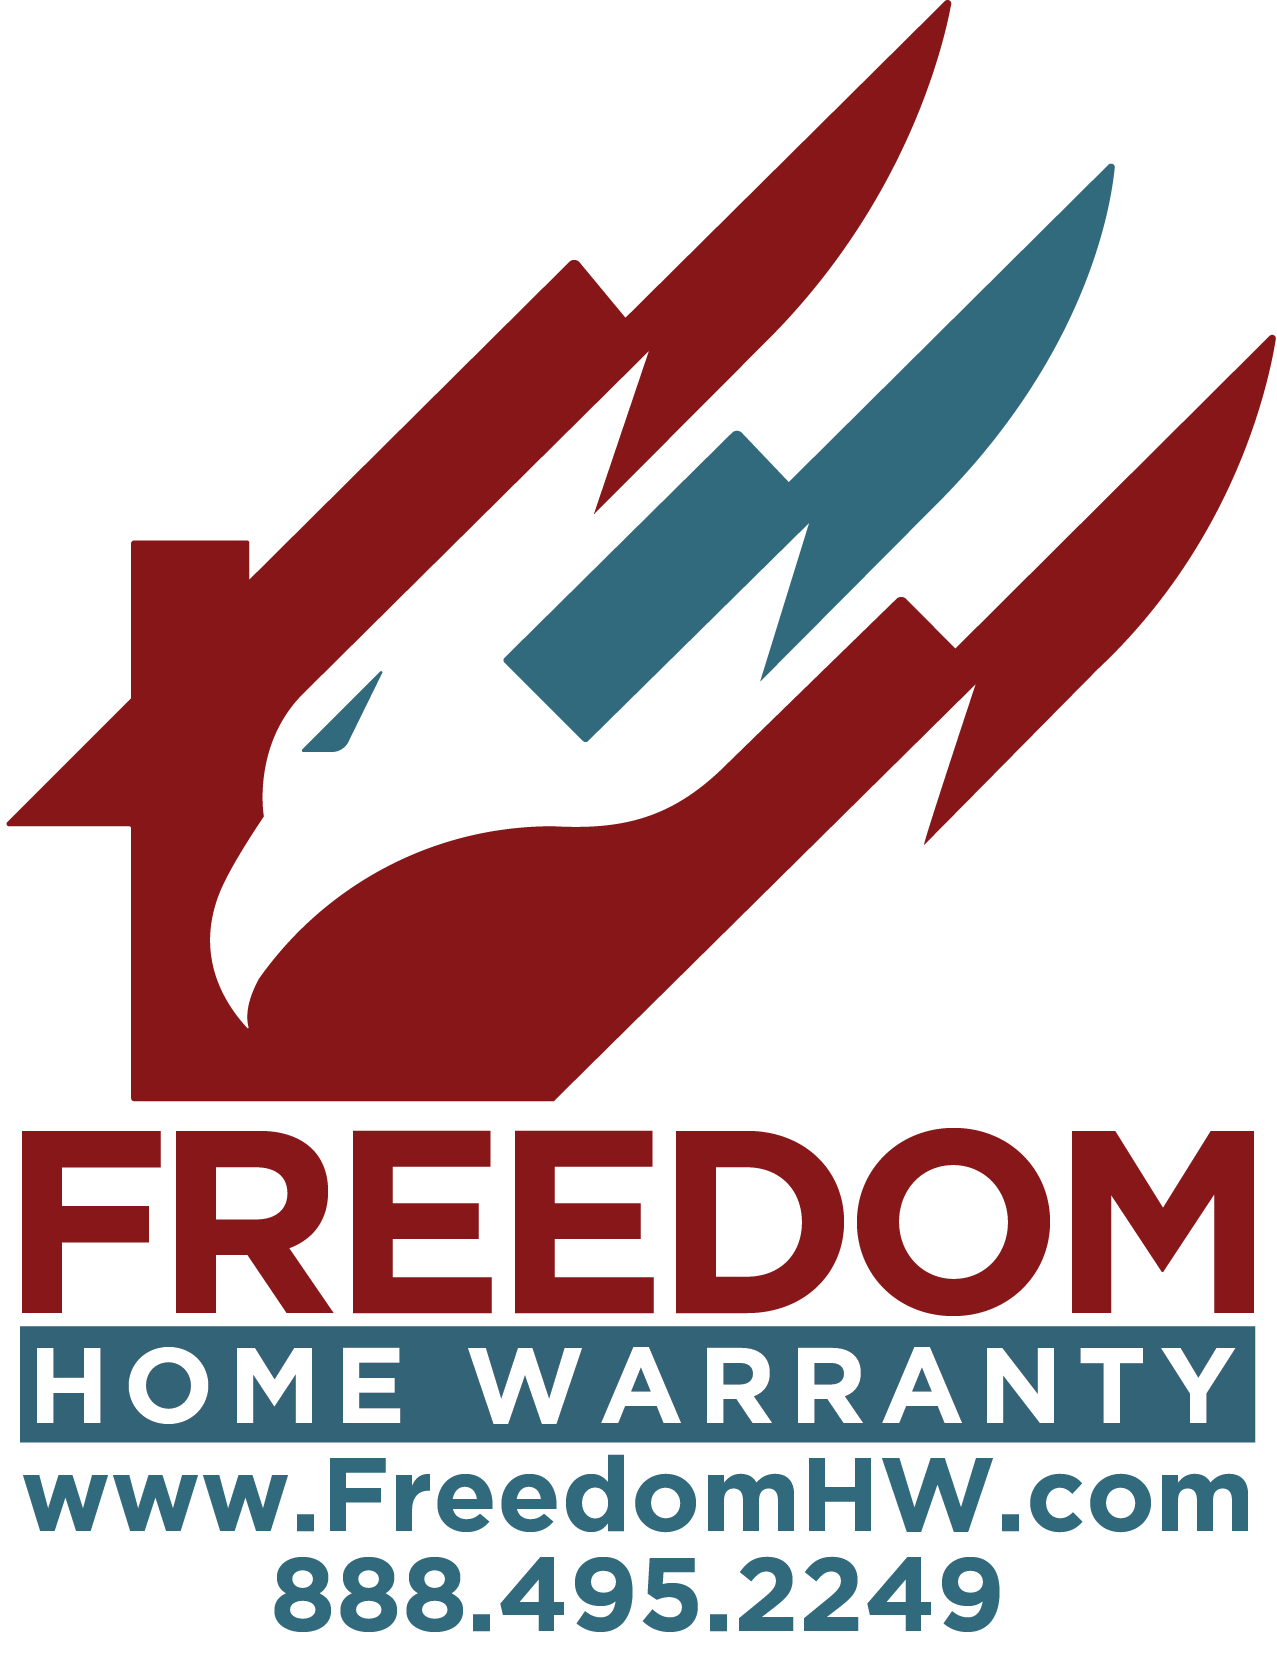 Home Warranty Companies | Freedom Home Warranty | Home